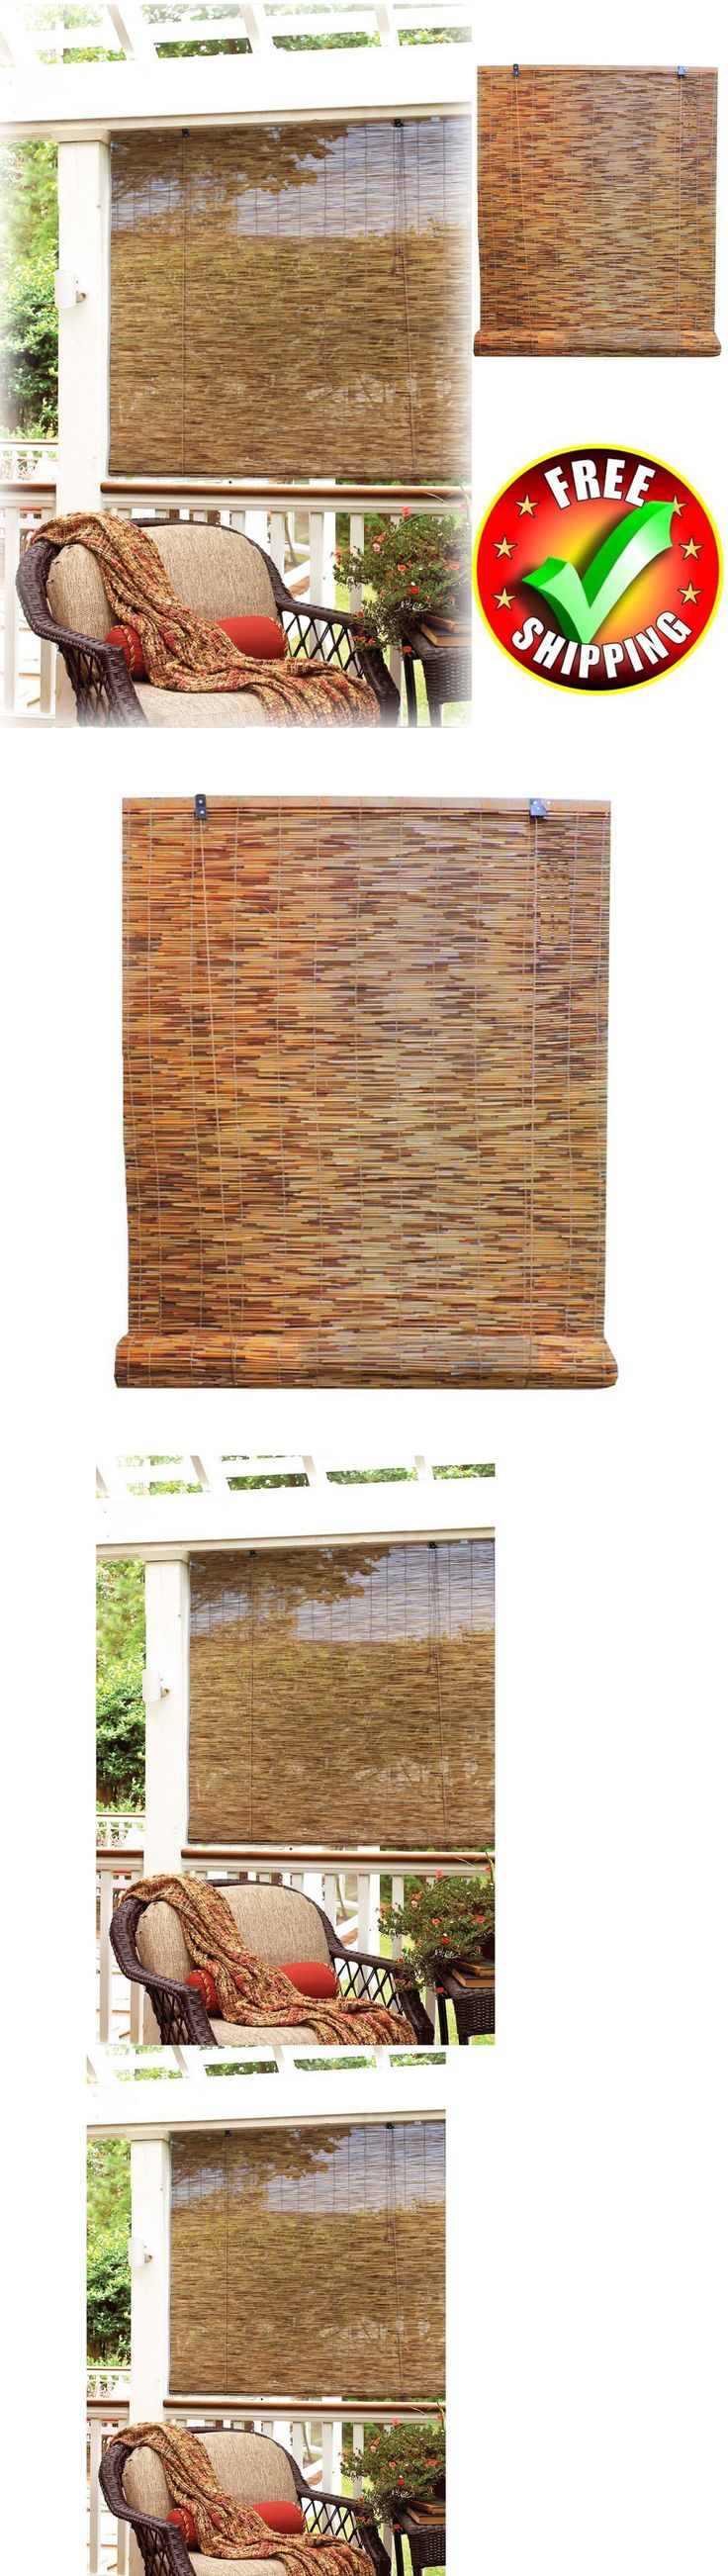 Blinds and Shades 20585: Bamboo Shade 48X72 Roll Up Window Reed Woven Natural Rustic Outdoor Blind New -> BUY IT NOW ONLY: $39.99 on eBay!